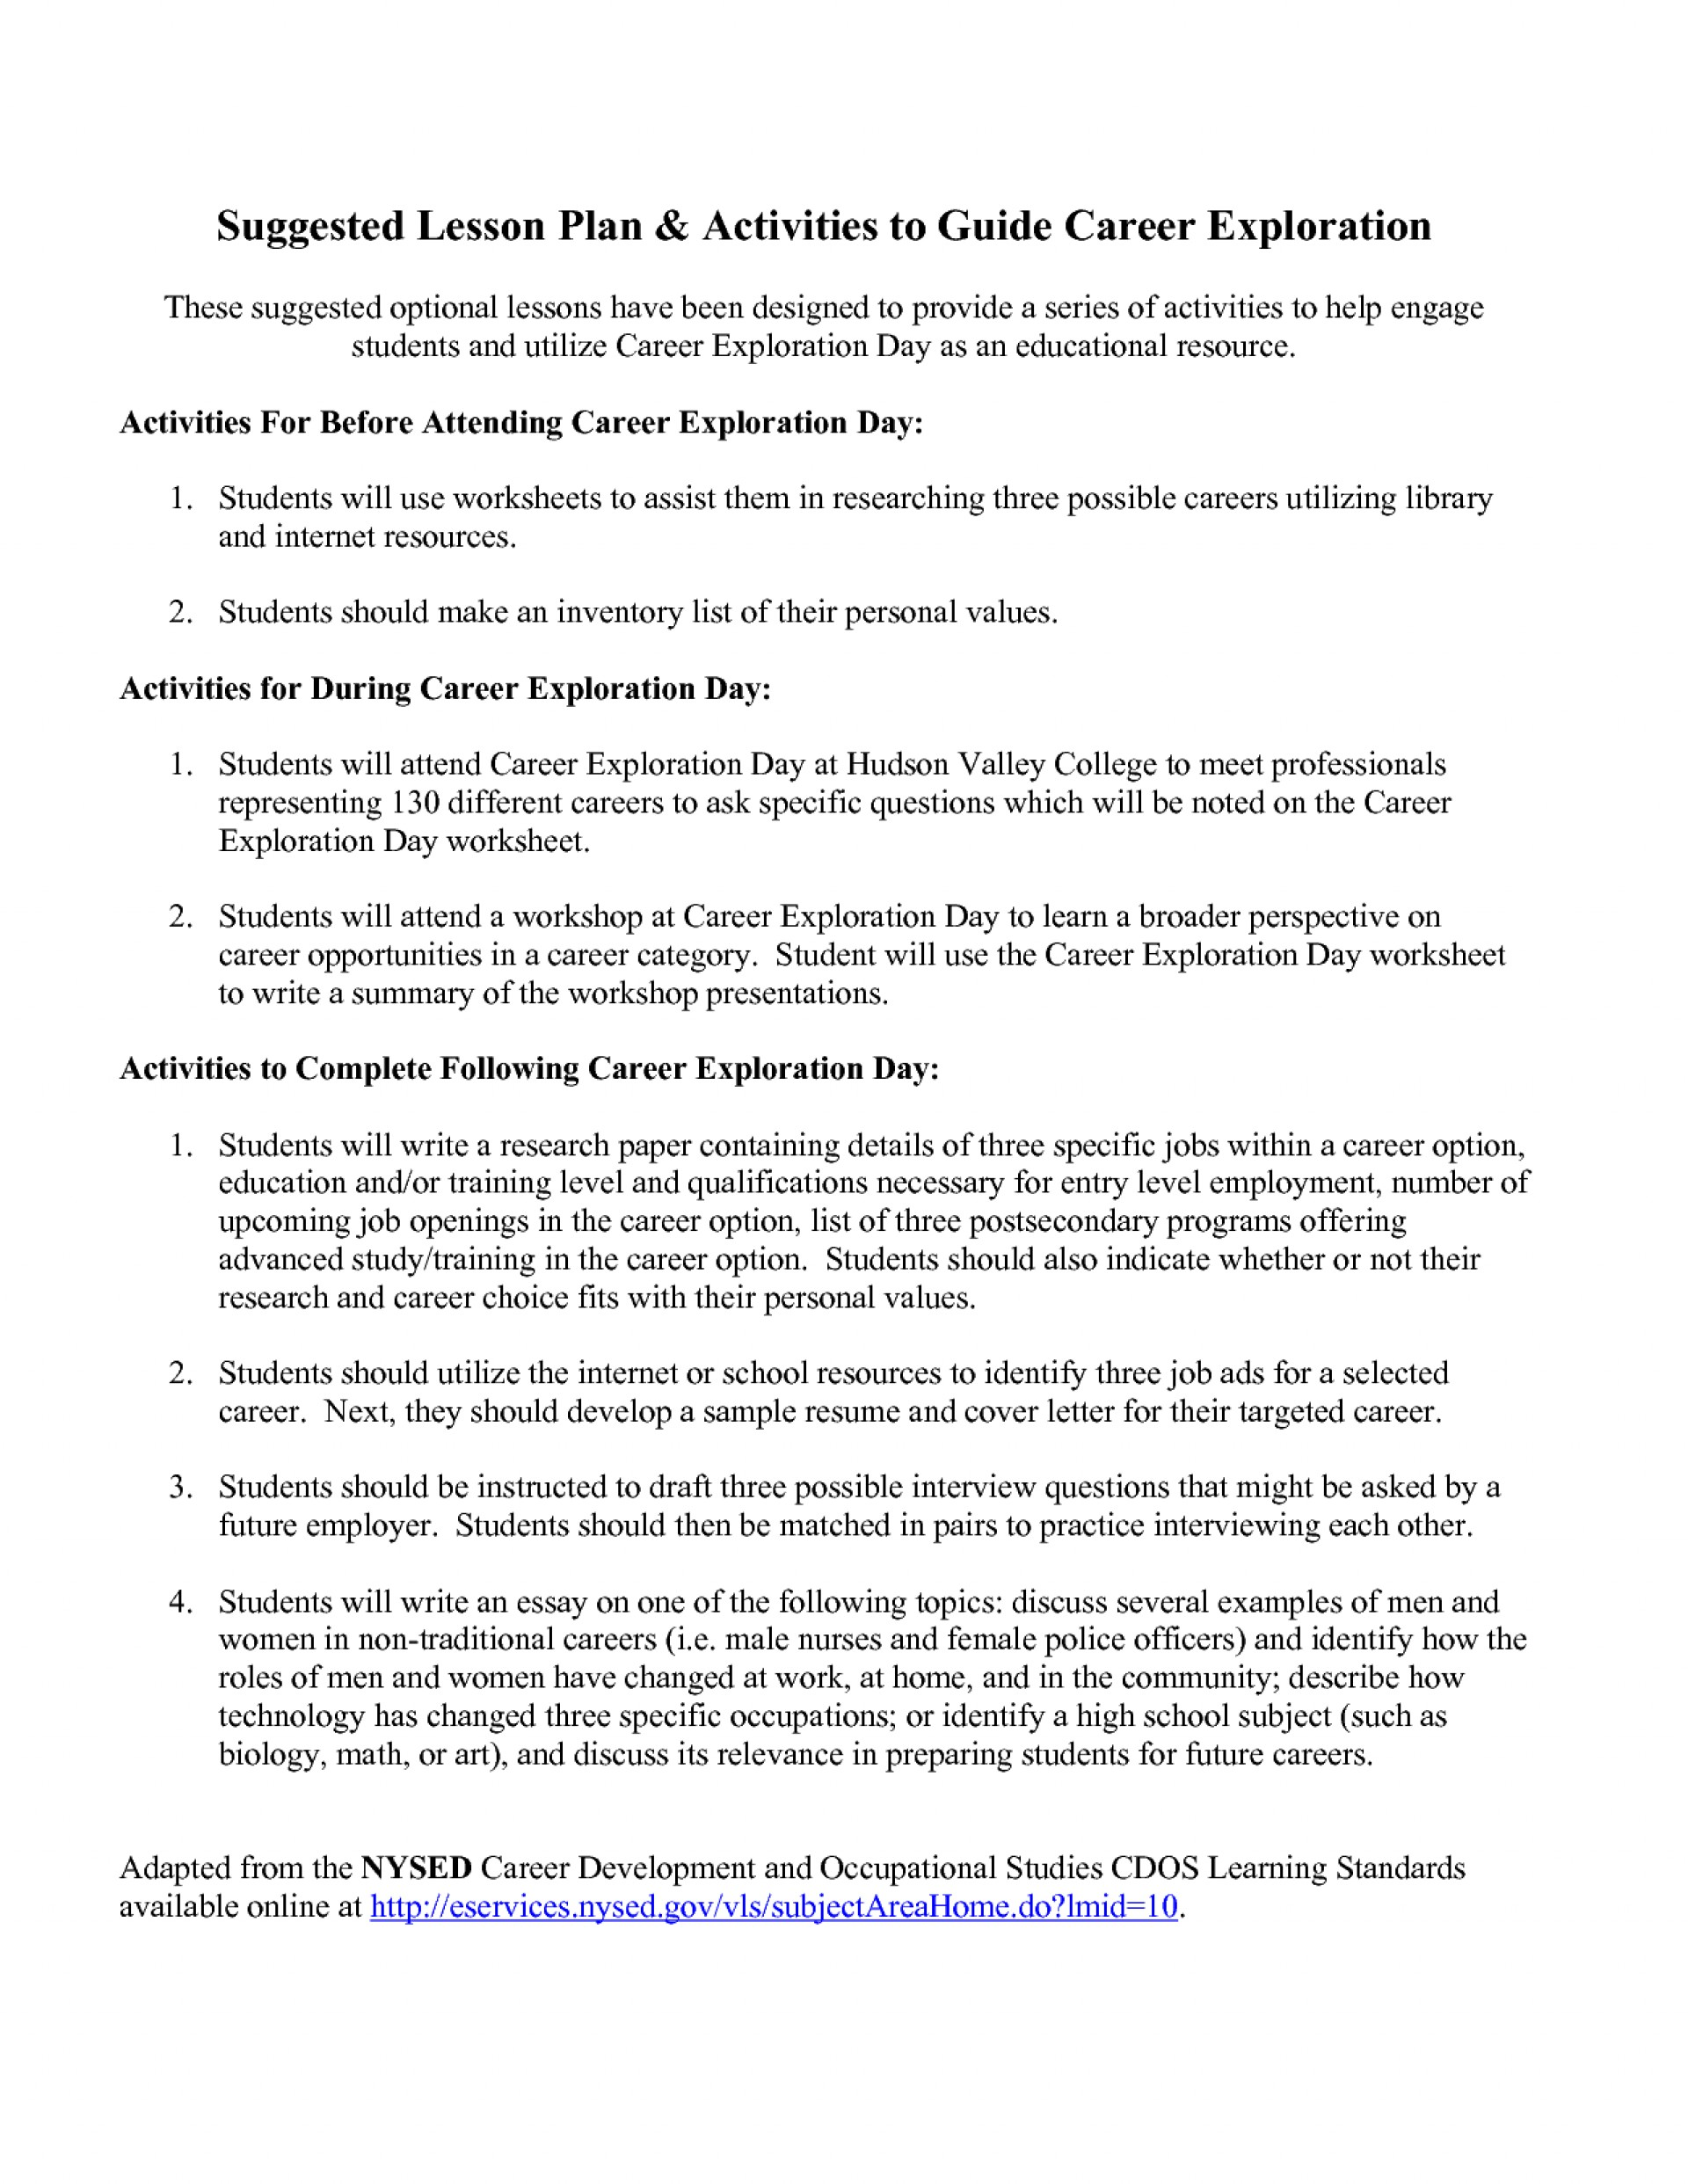 020 Research Paper Career Exploration Example Worksheets 100489 Unique 1920